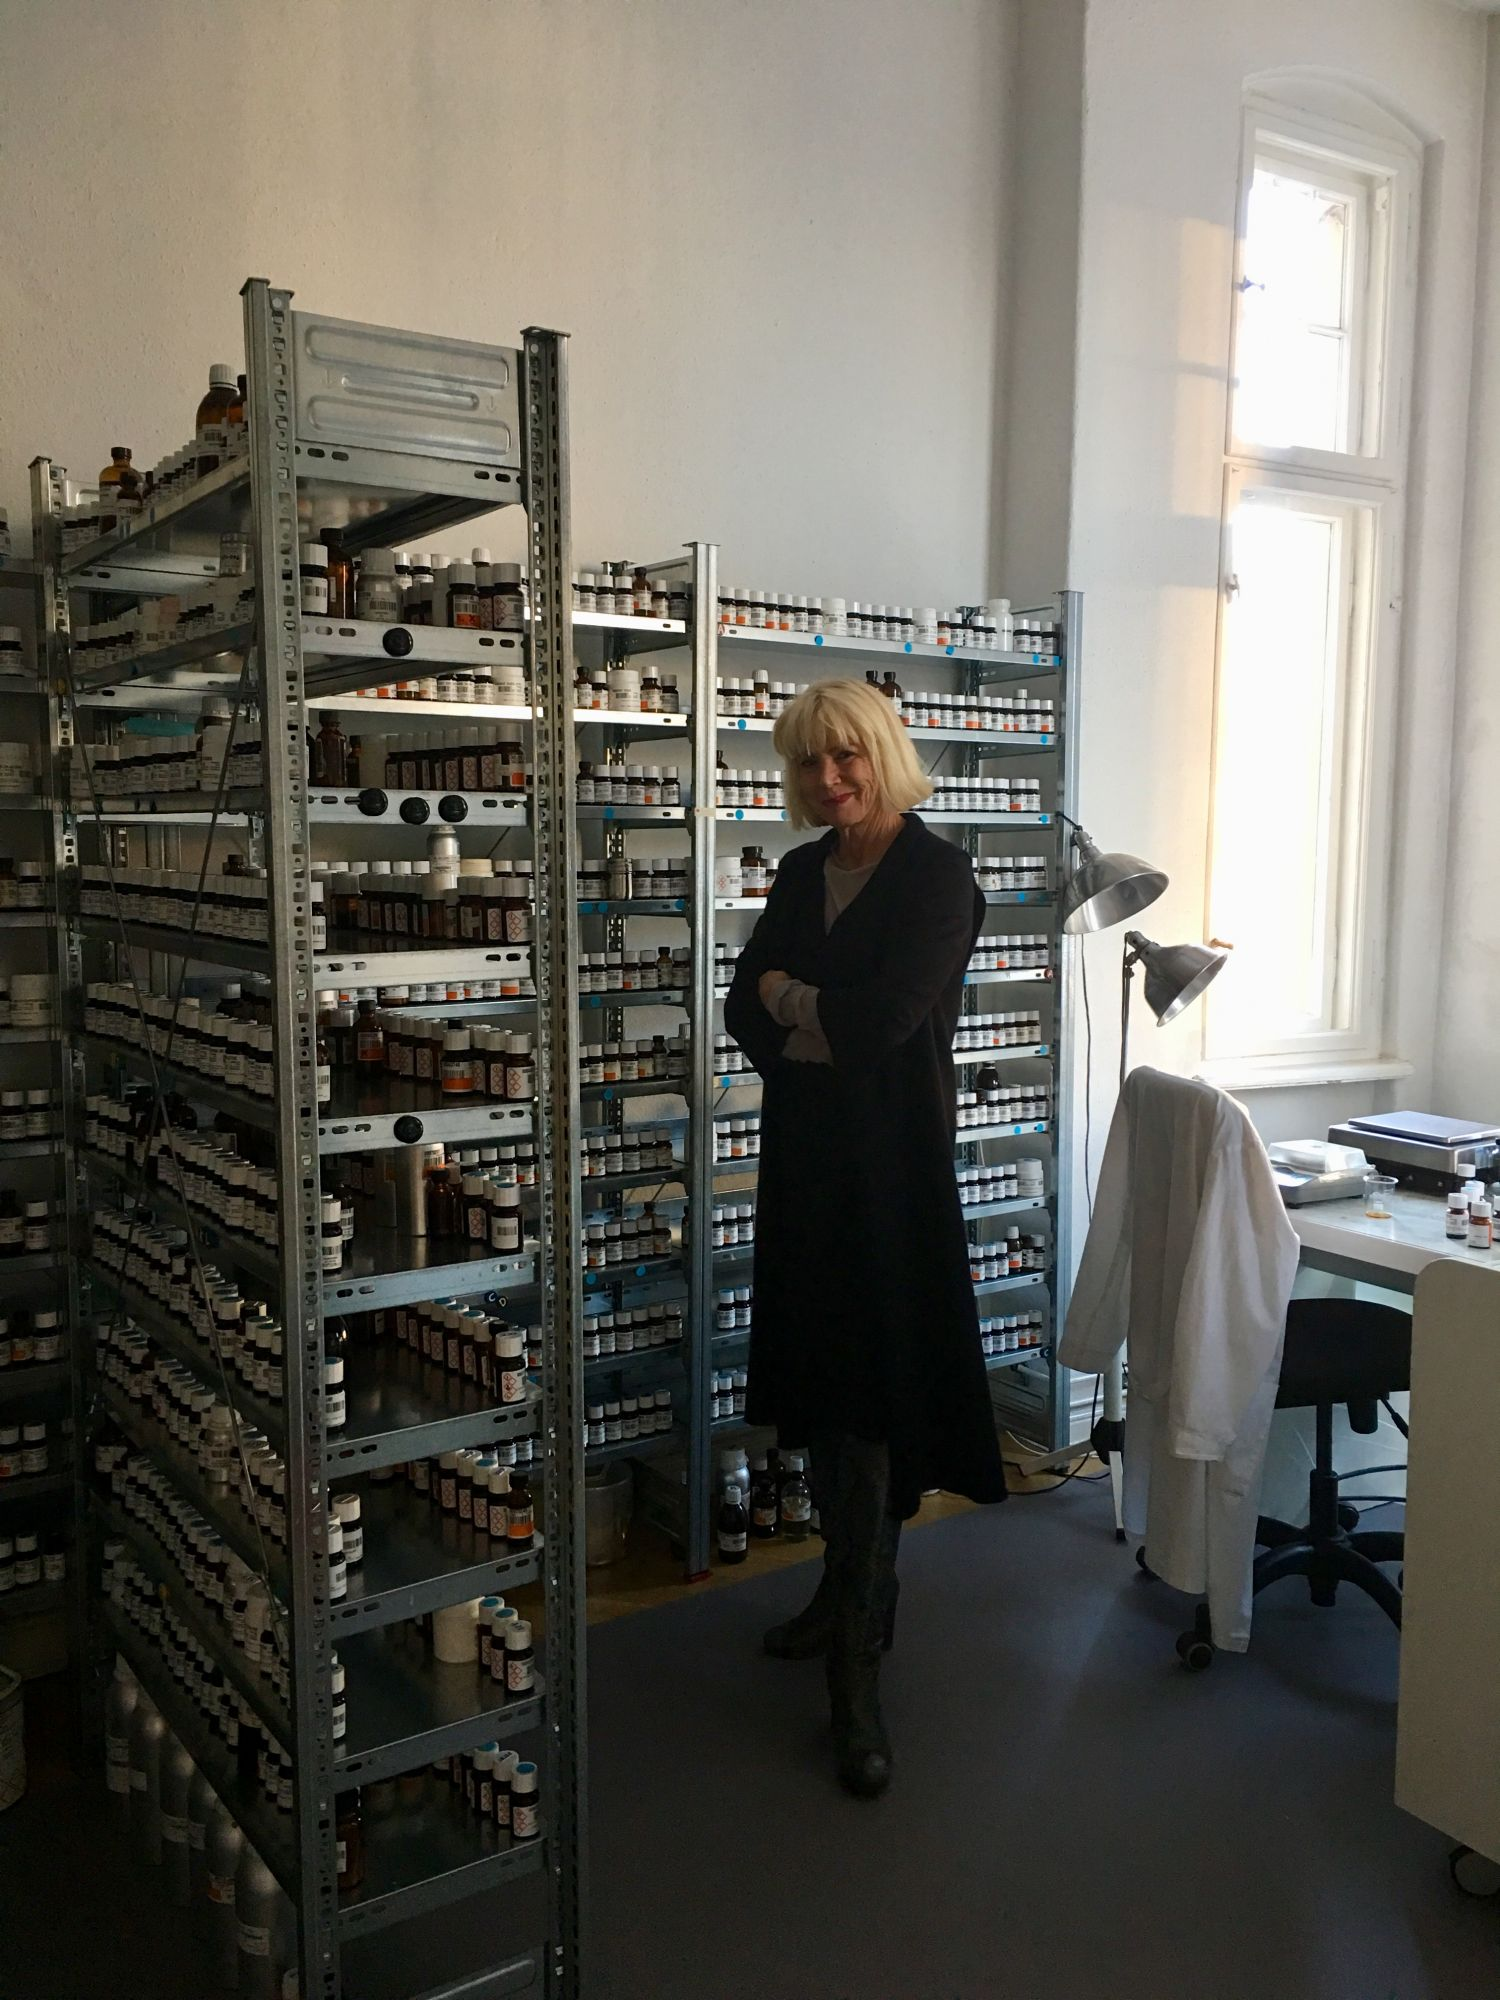 5 Minutes With… Olfactory Artist Sissel Tolaas